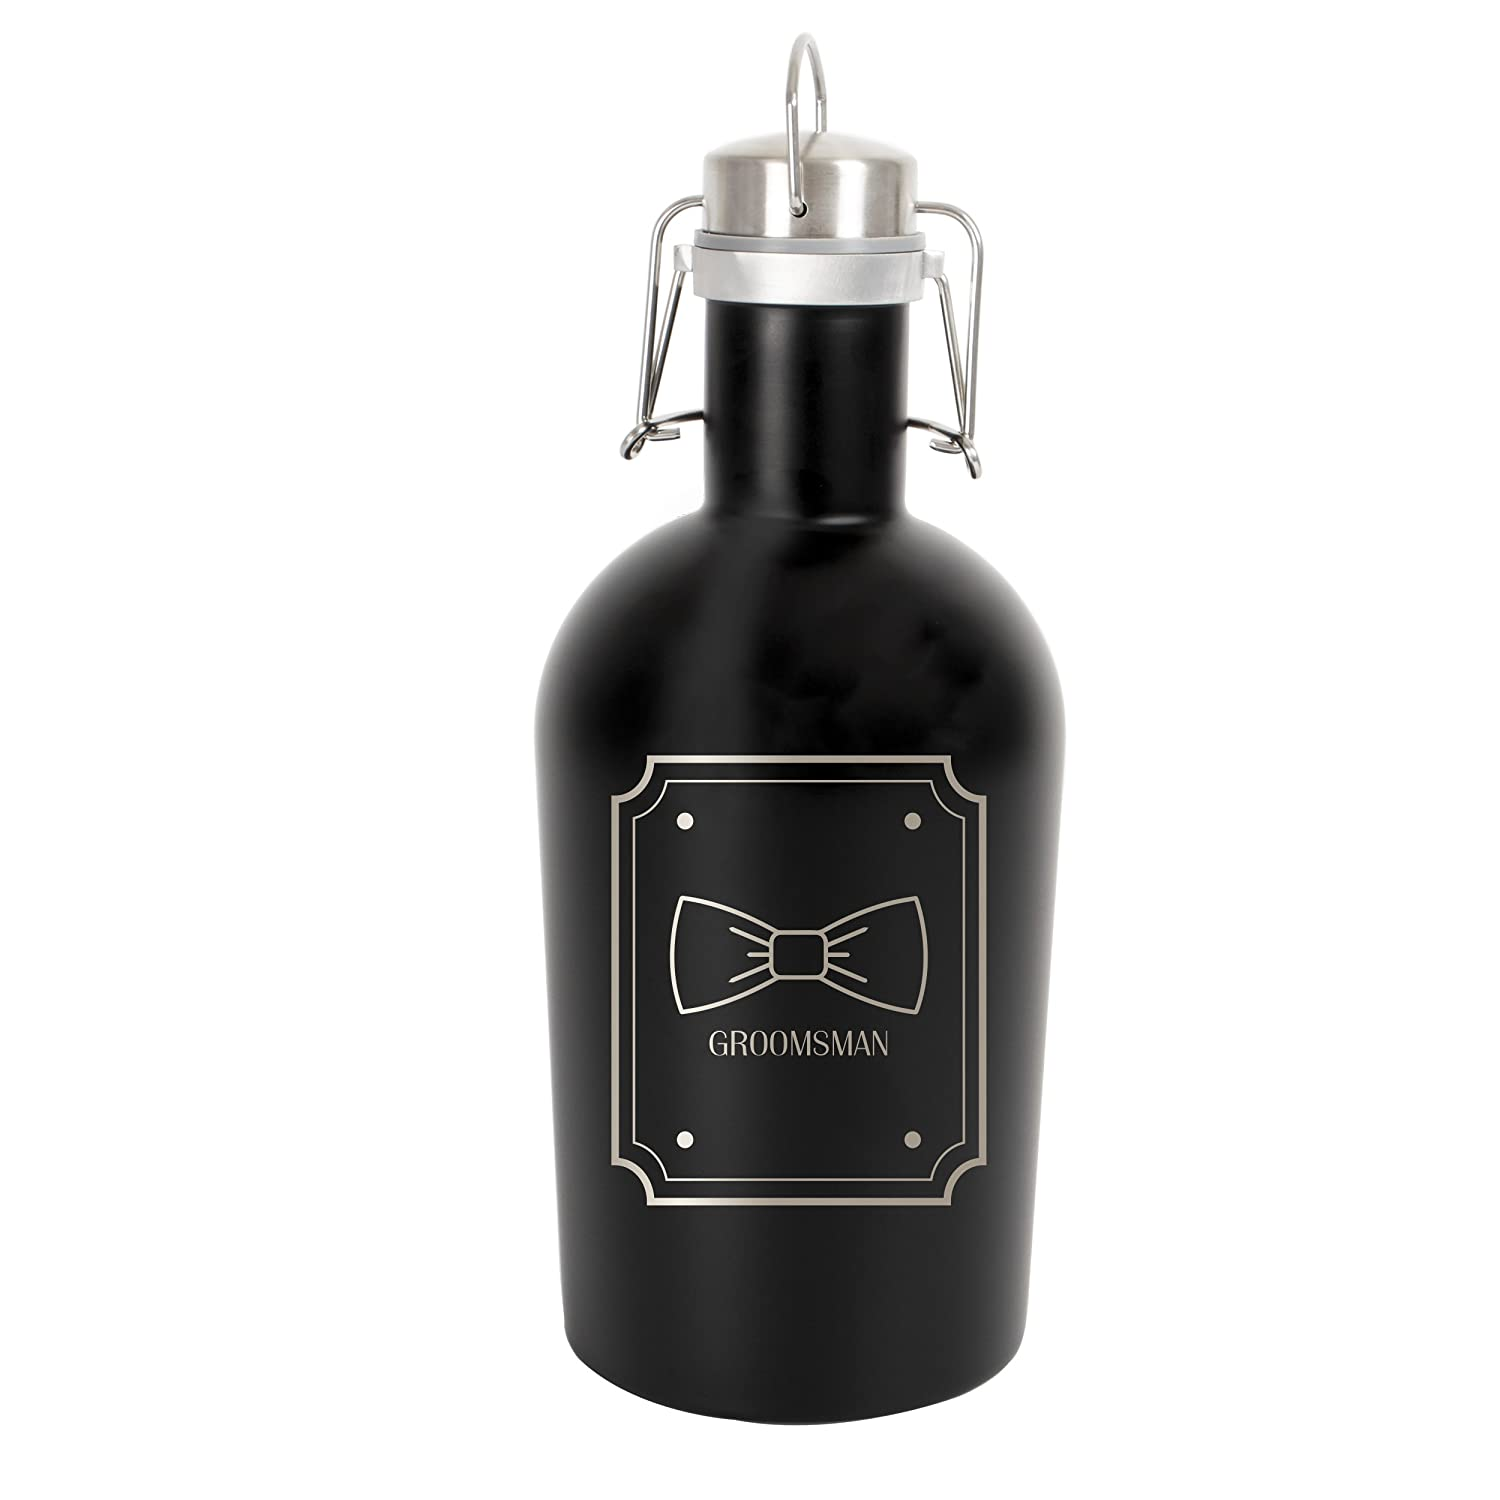 Cathy's Concepts Stainless Steel Groomsman Growler, Black Cathy's Concepts WD-2209